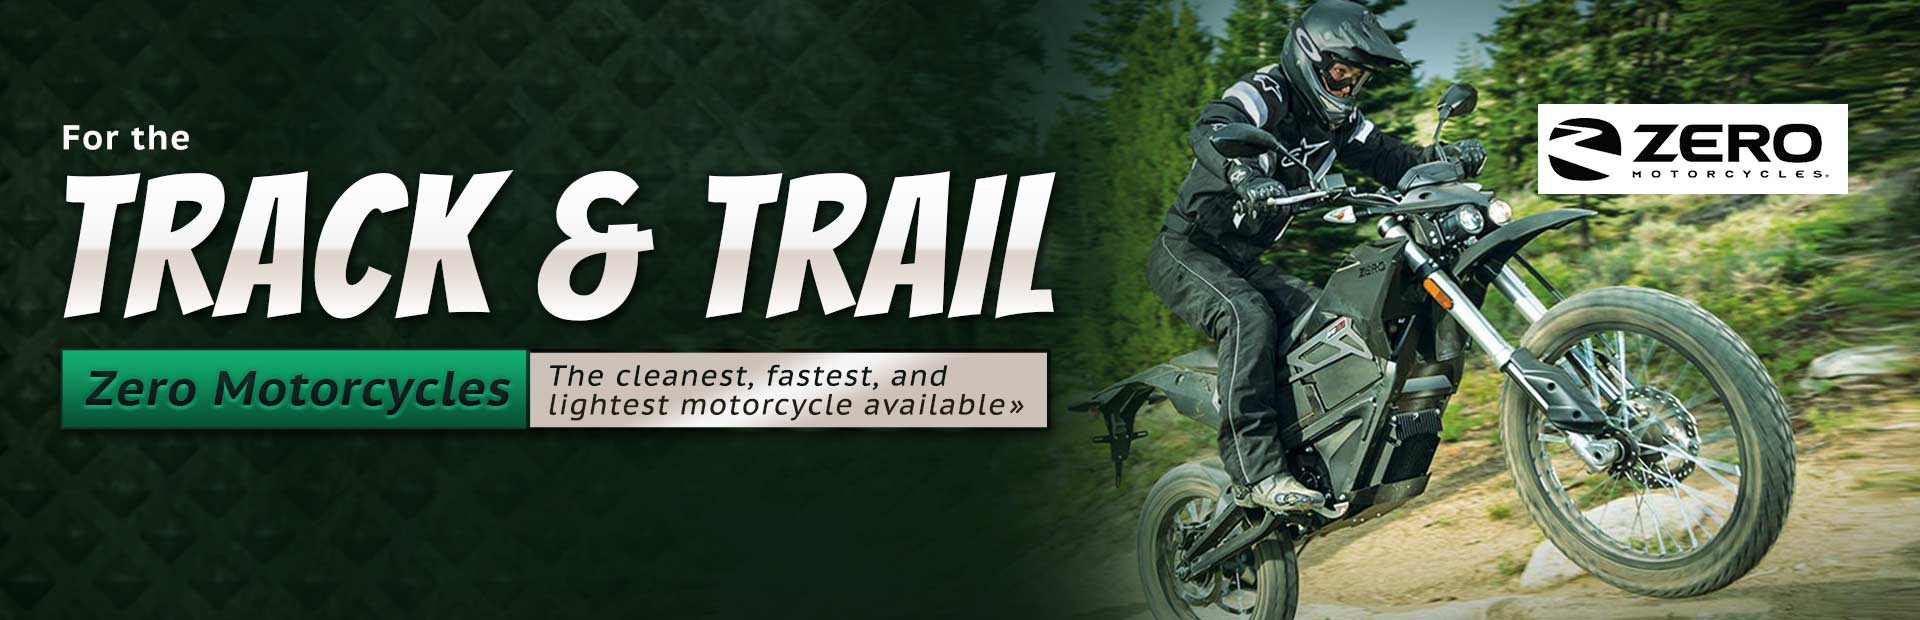 Click here to view dirt bikes from Zero Motorcycles.